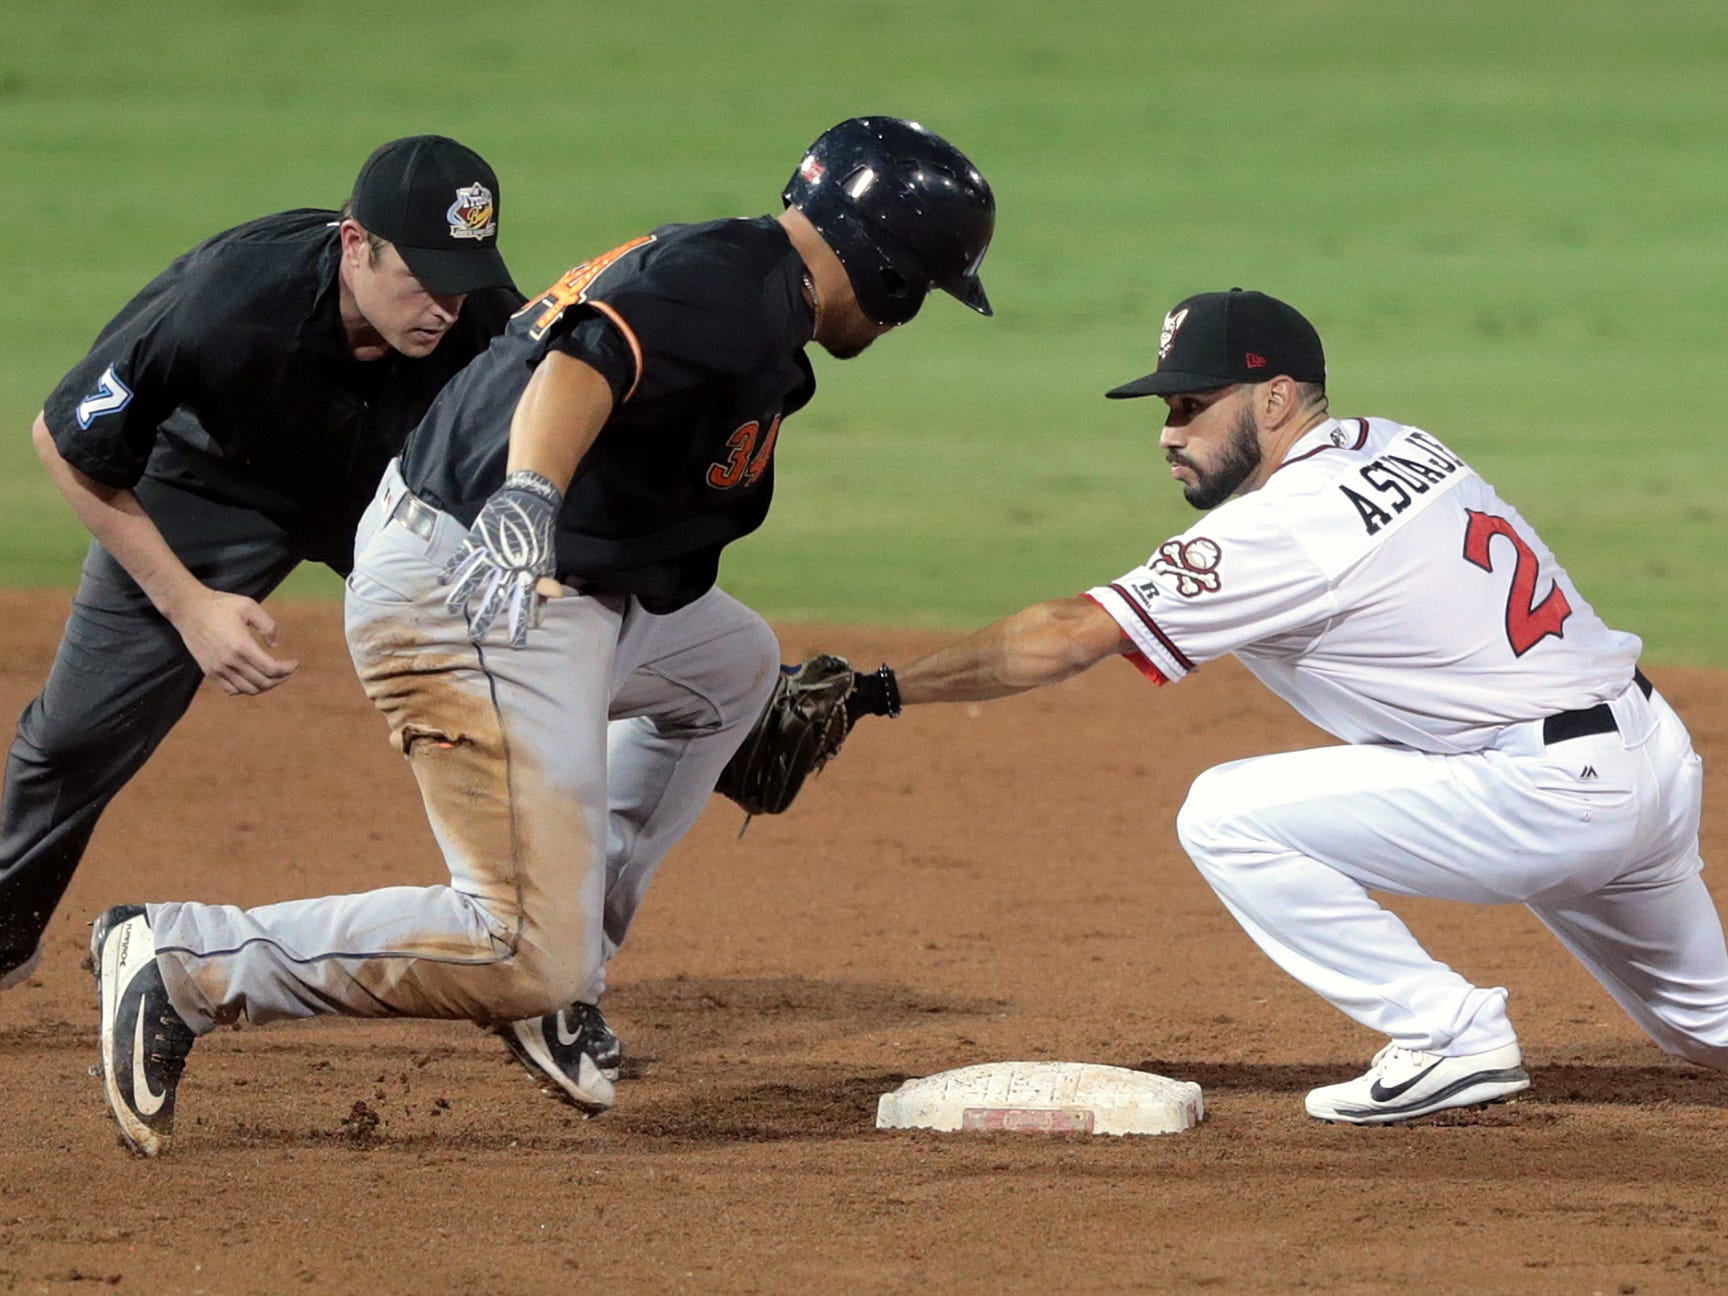 The El Paso Chihuahuas Kick Off Their Playoff Series Against Fresno